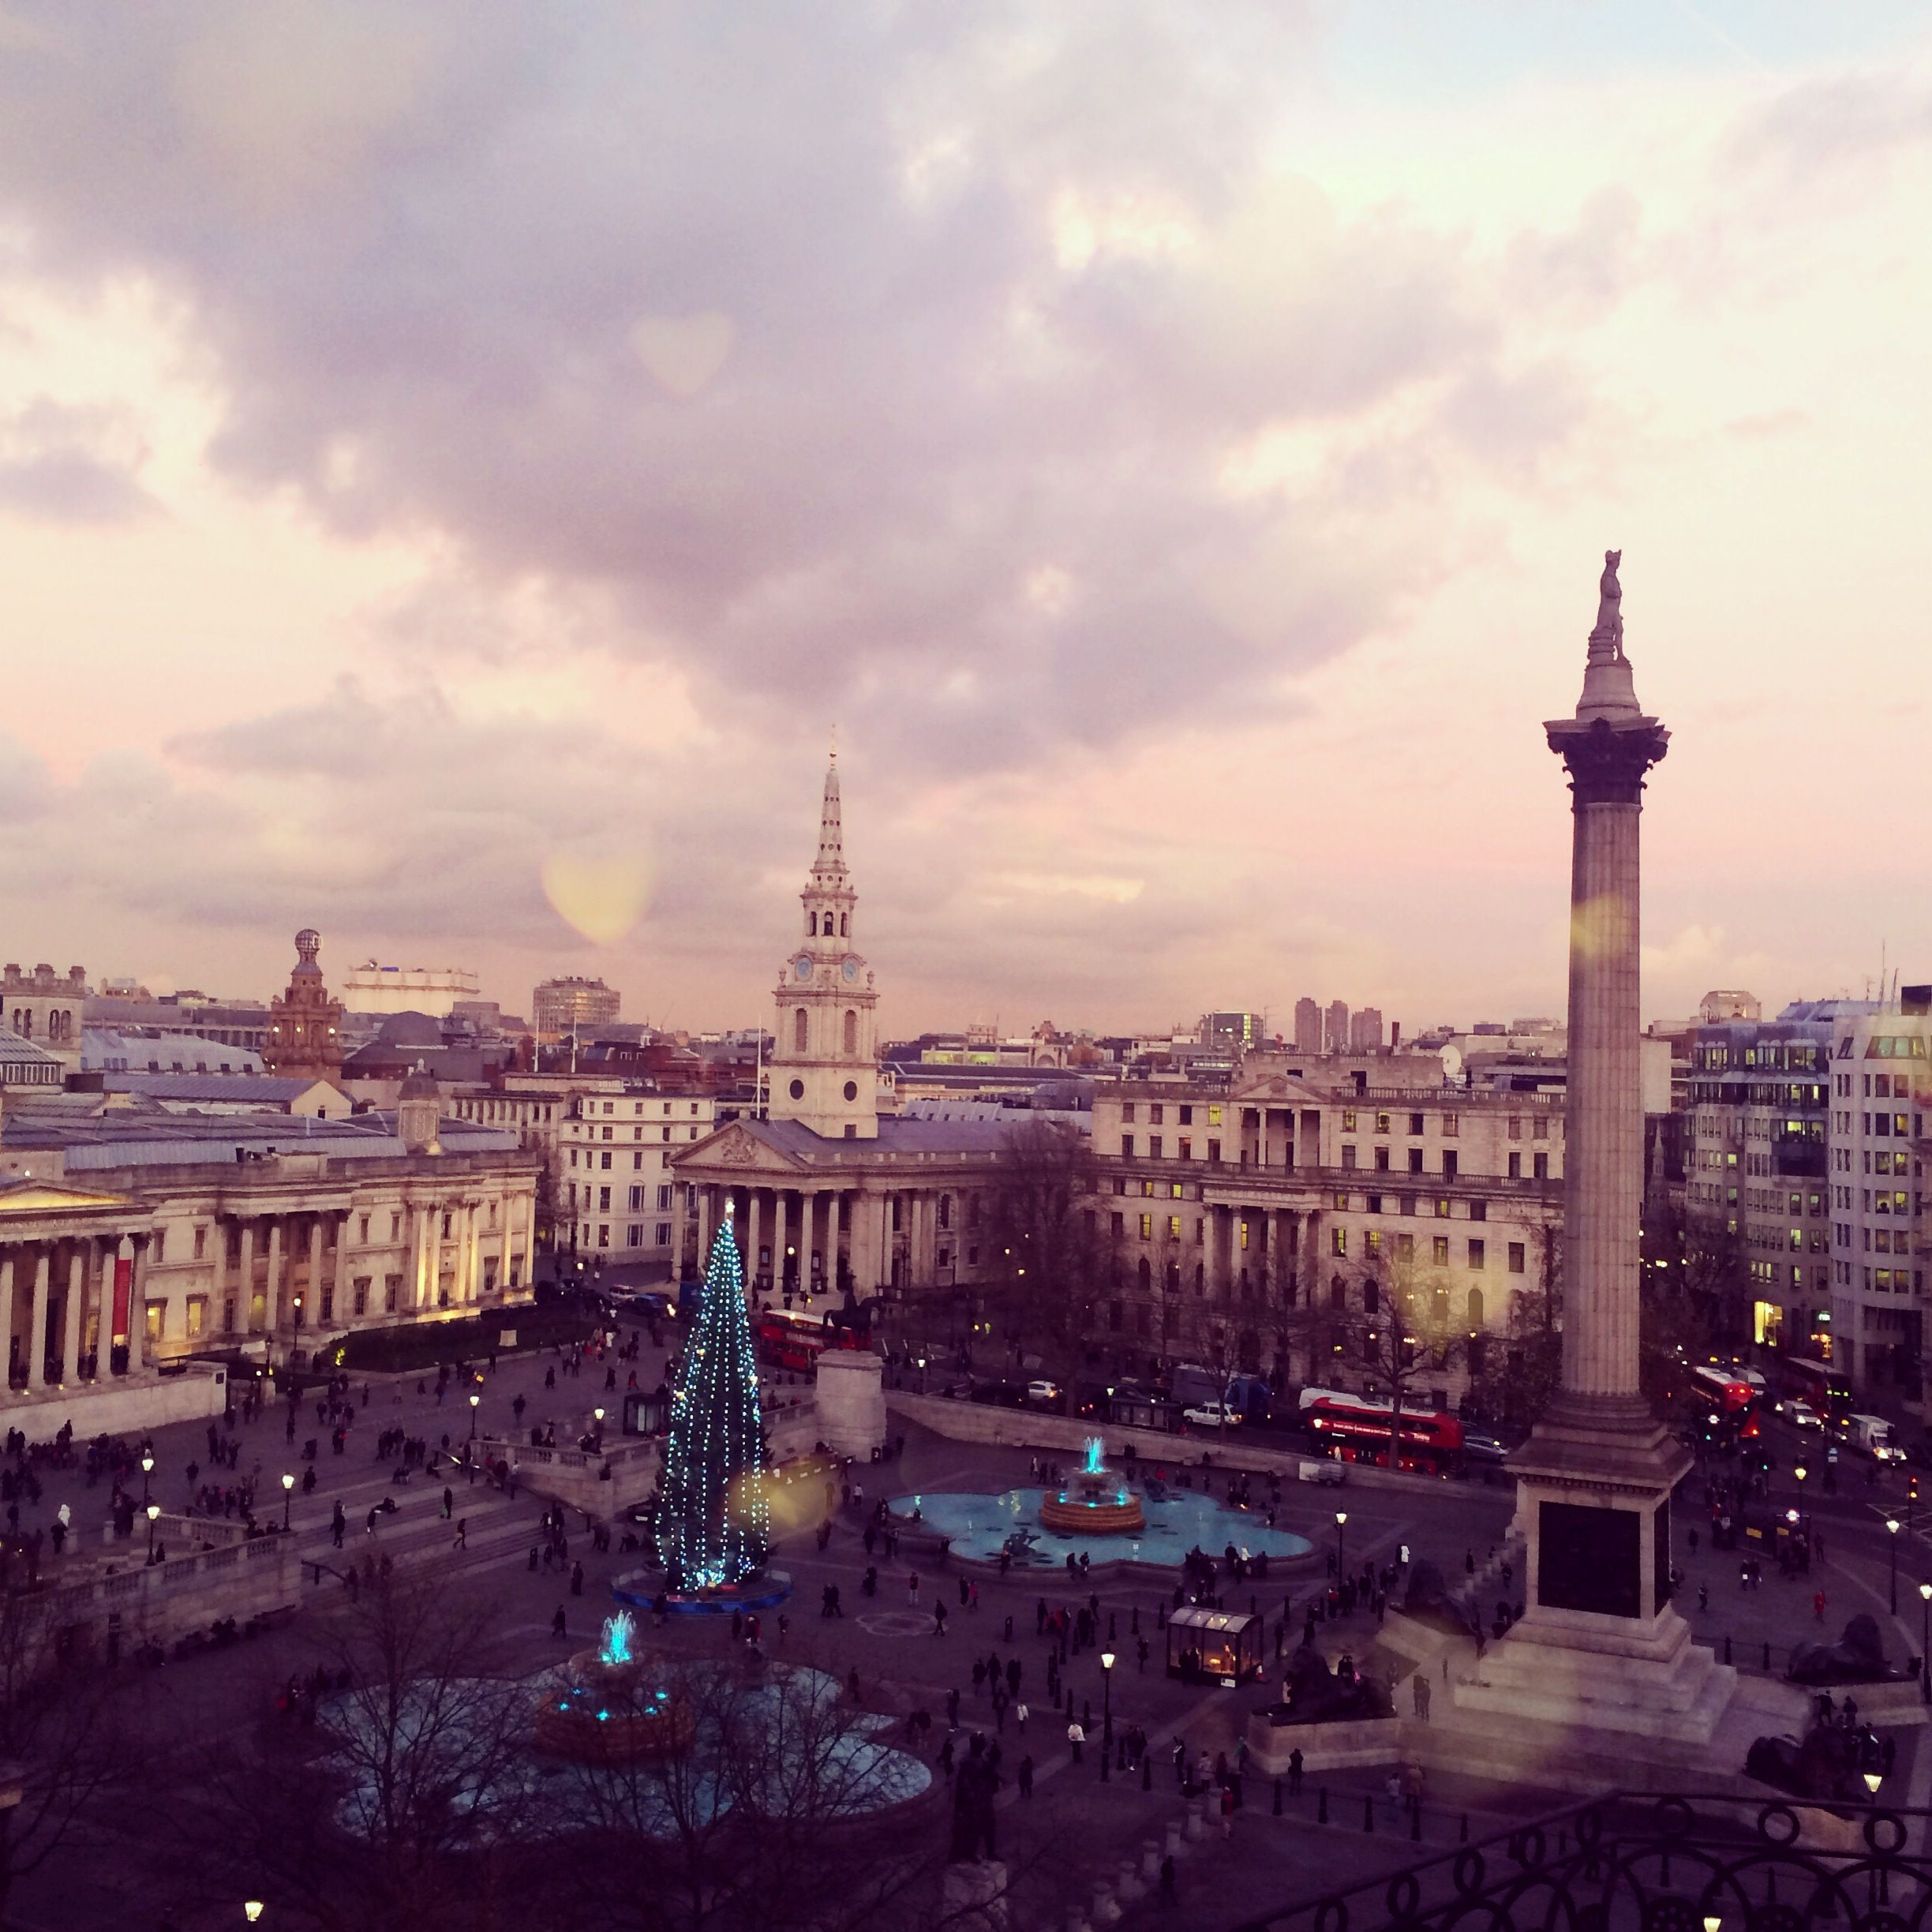 Christmas Places To Visit In London: Clouds Gathering Over Trafalgar Square In #London At Dusk